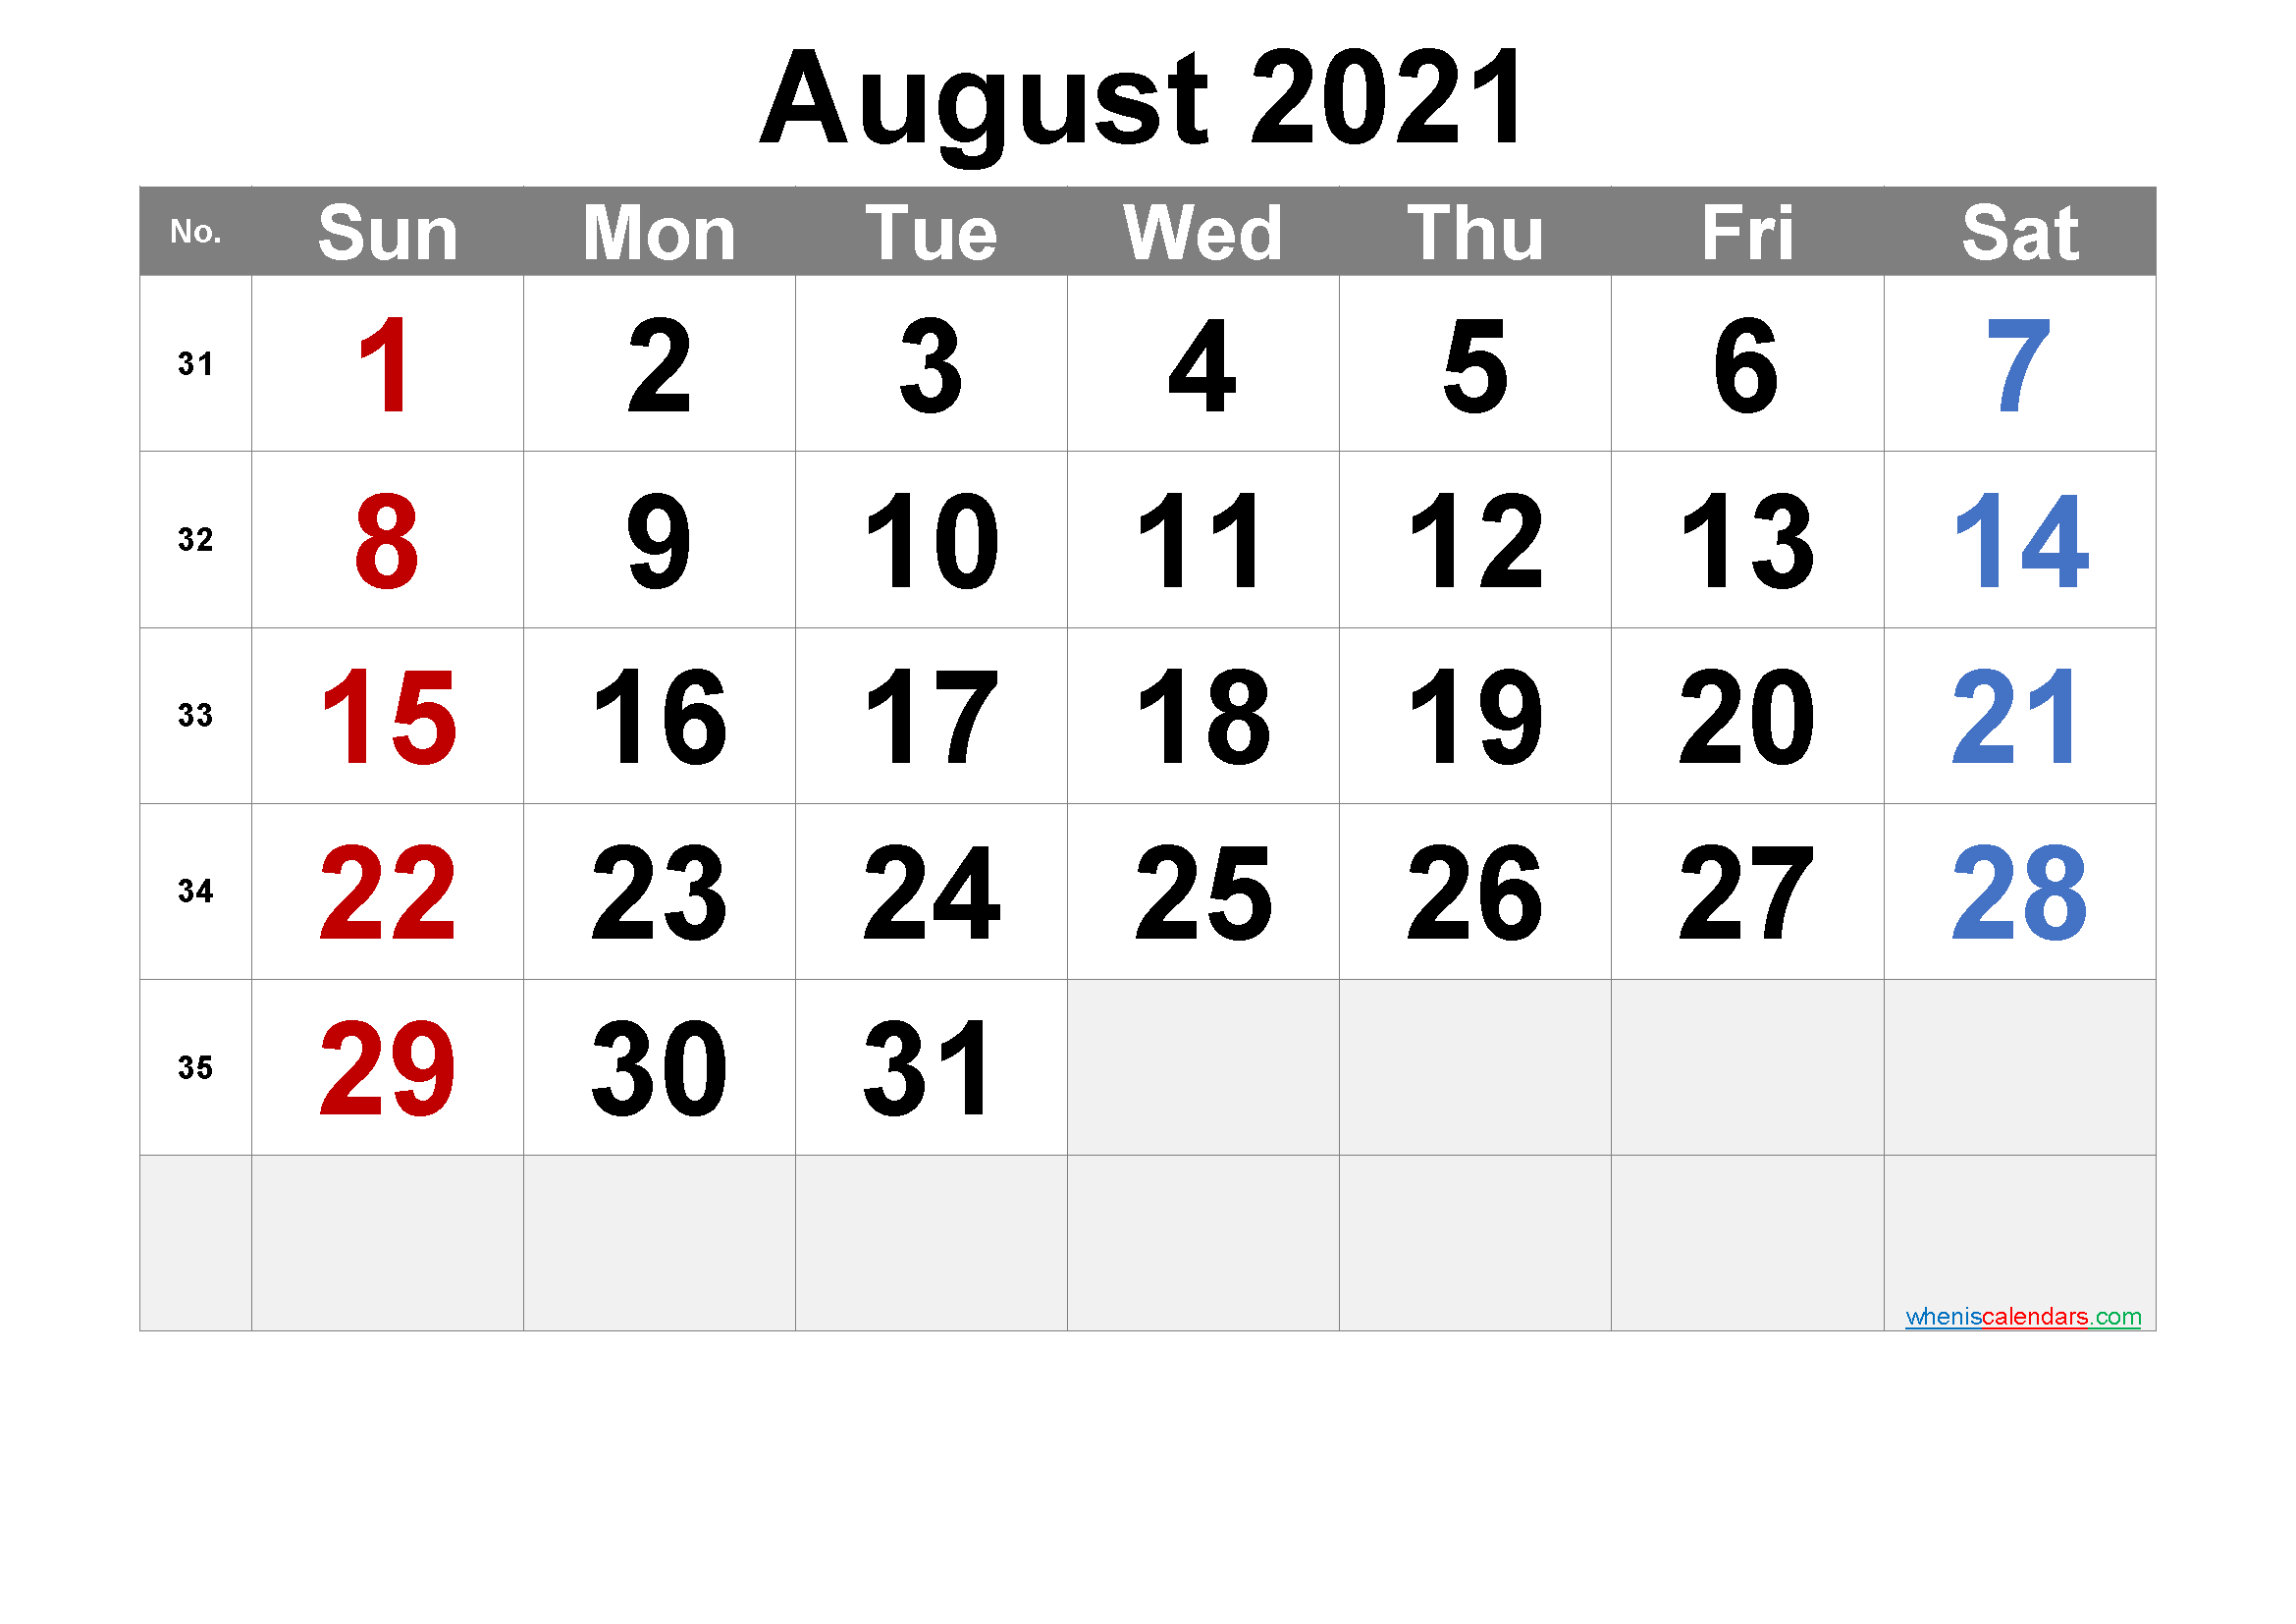 AUGUST 2021 Printable Calendar with Holidays